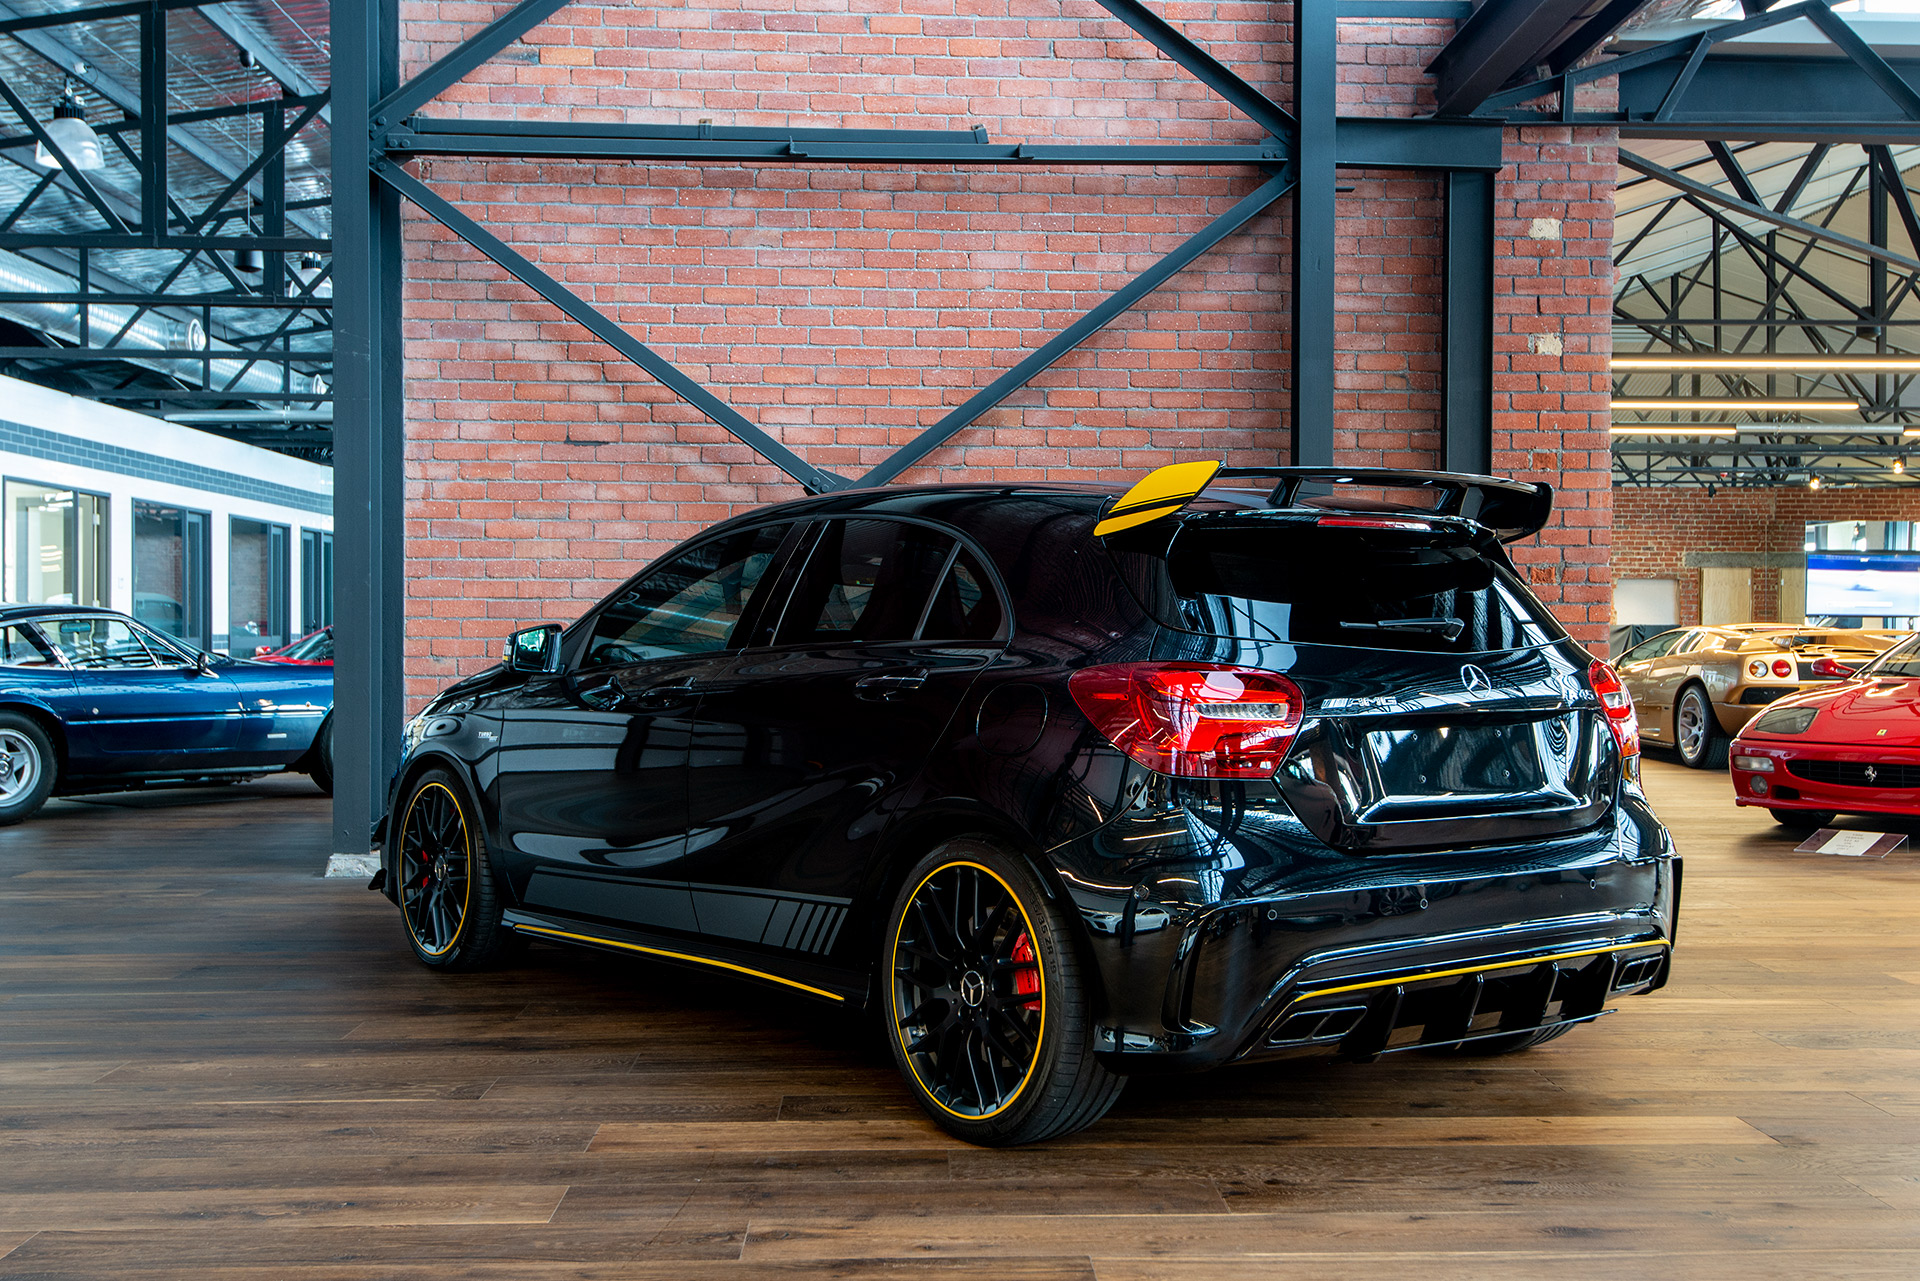 Front Wheel Drive Cars >> 2017 Mercedes-Benz A45 AMG - Richmonds - Classic and ...